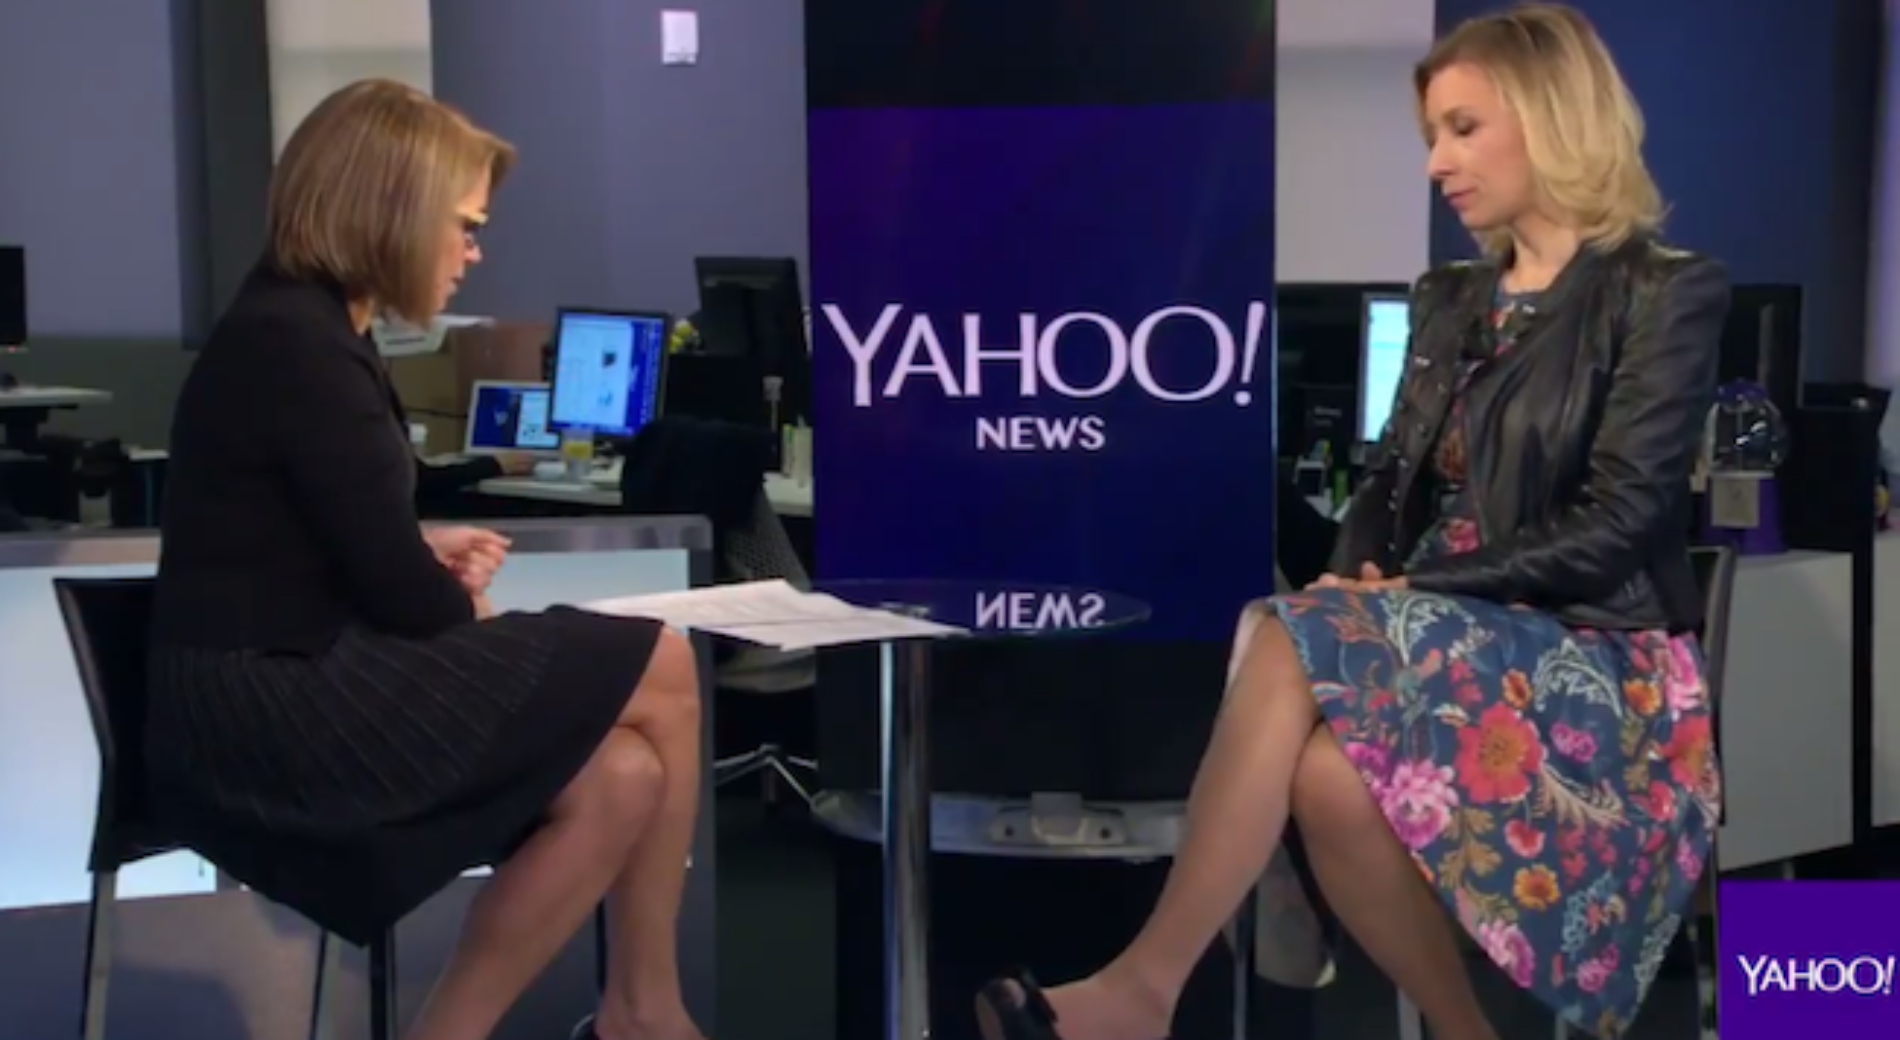 Katie Couric asks Russian spokeswoman about gay torture in Chechnya. Her response is troubling.